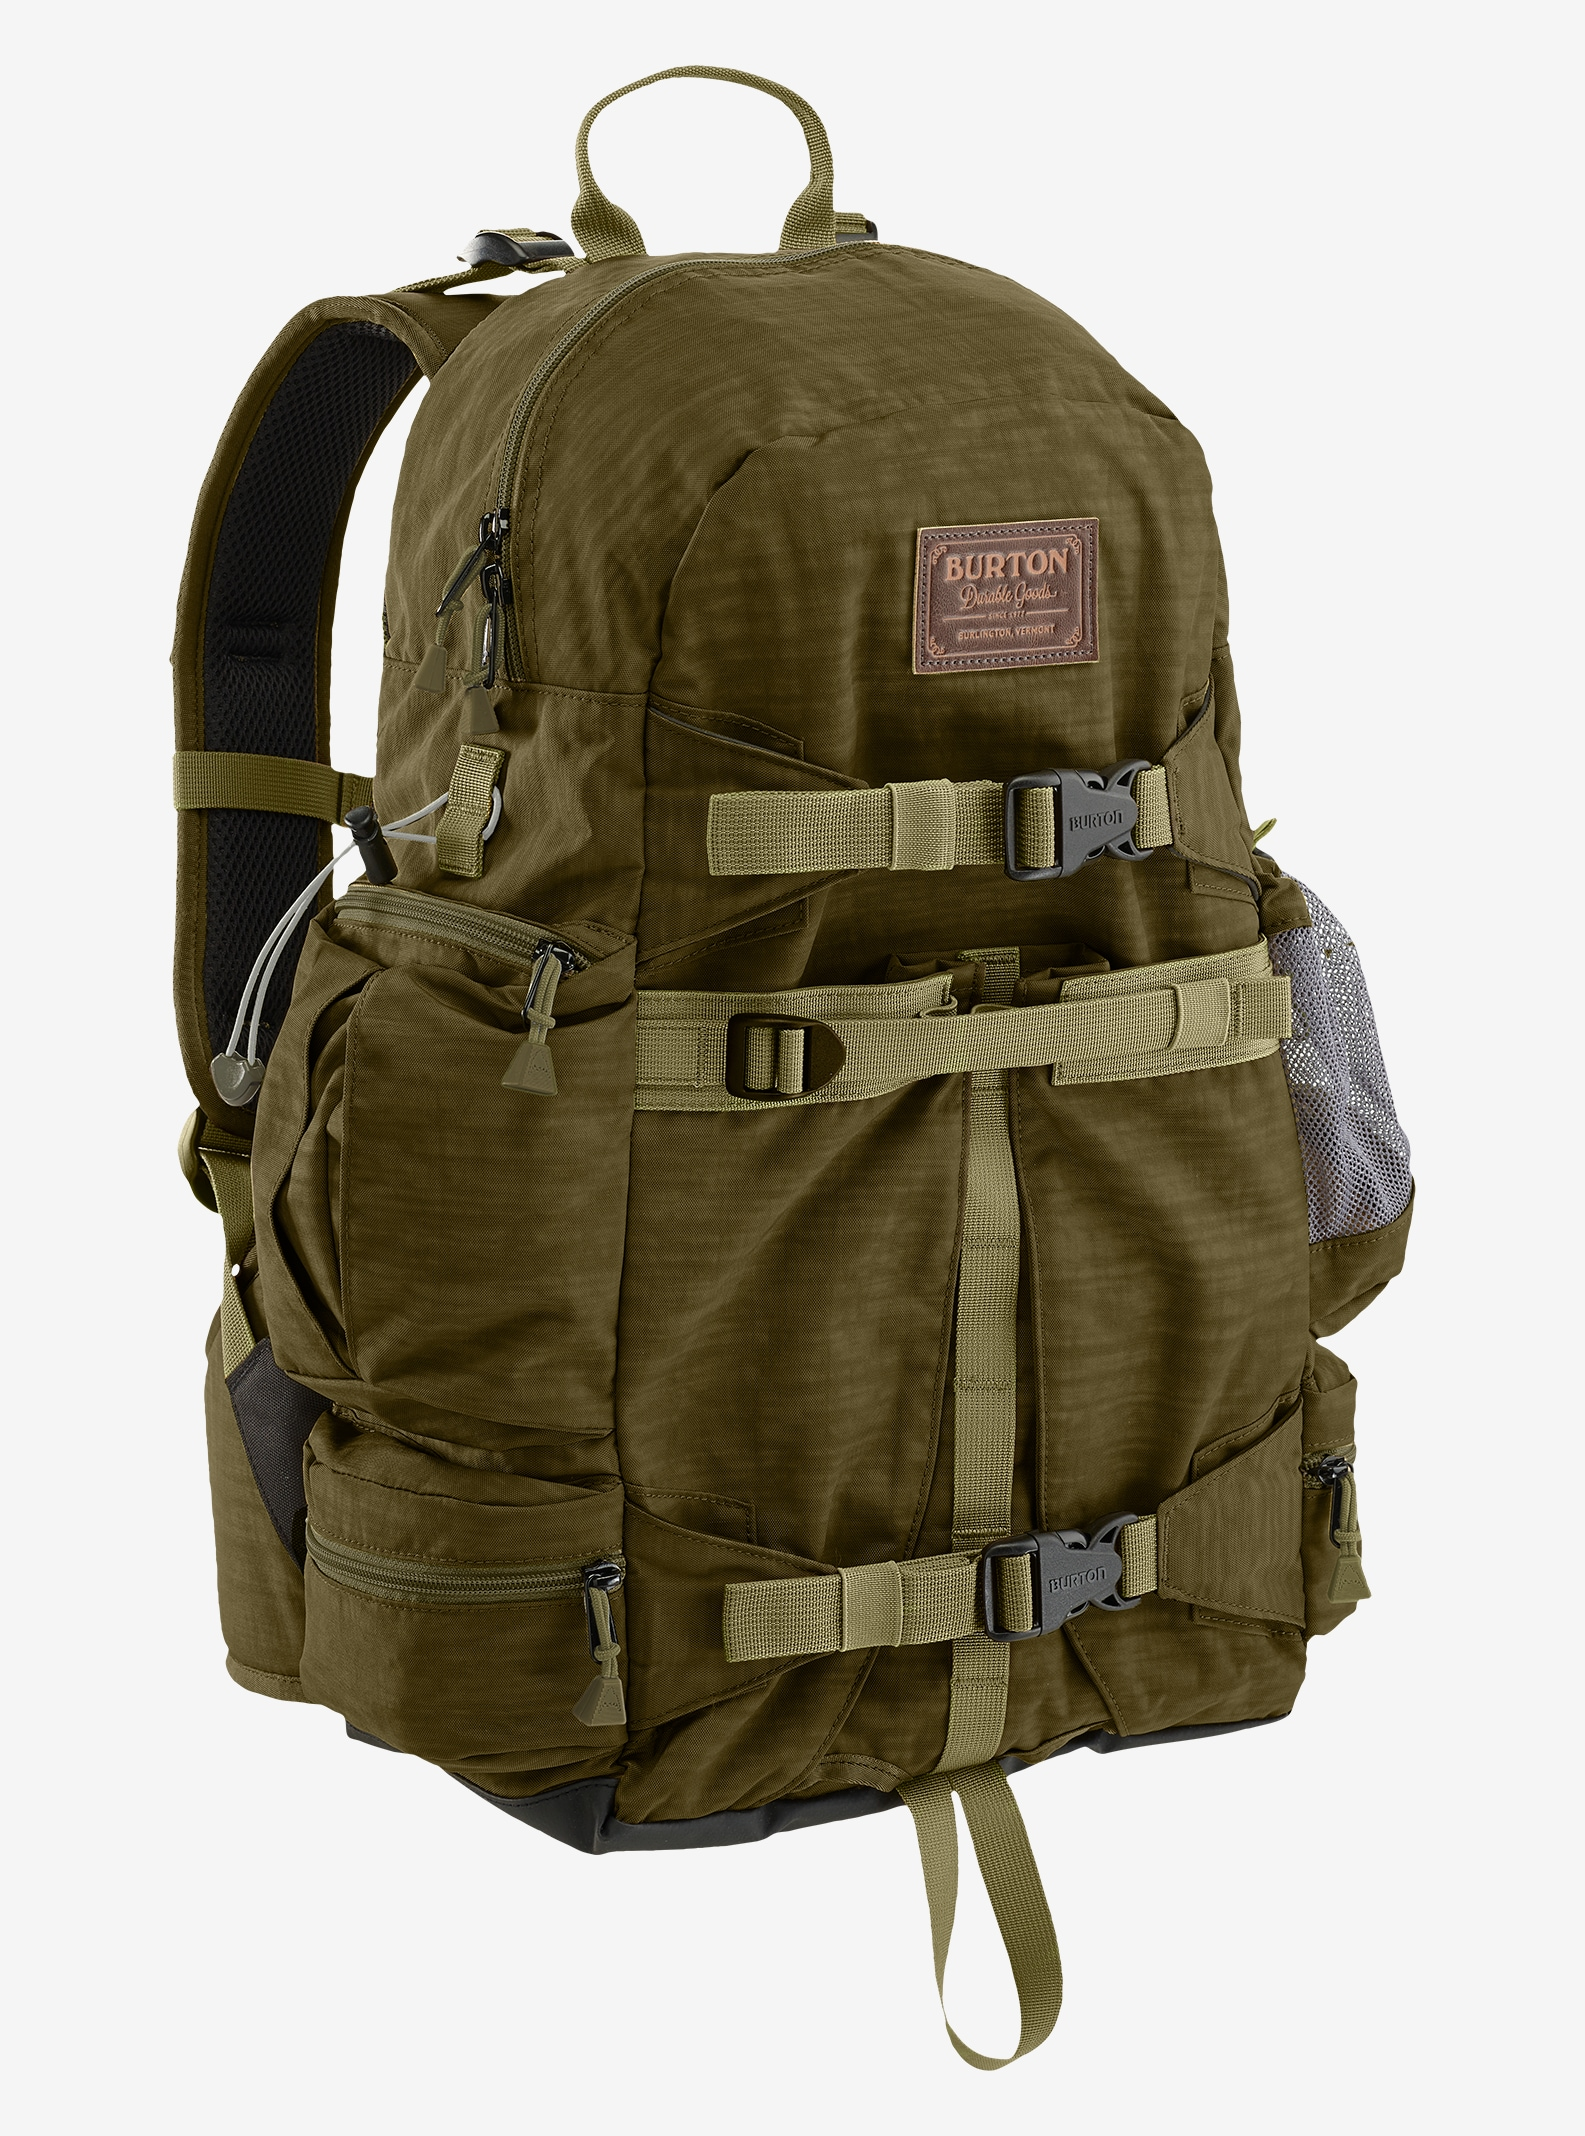 Burton Zoom 26L Backpack shown in Drab Crinkle